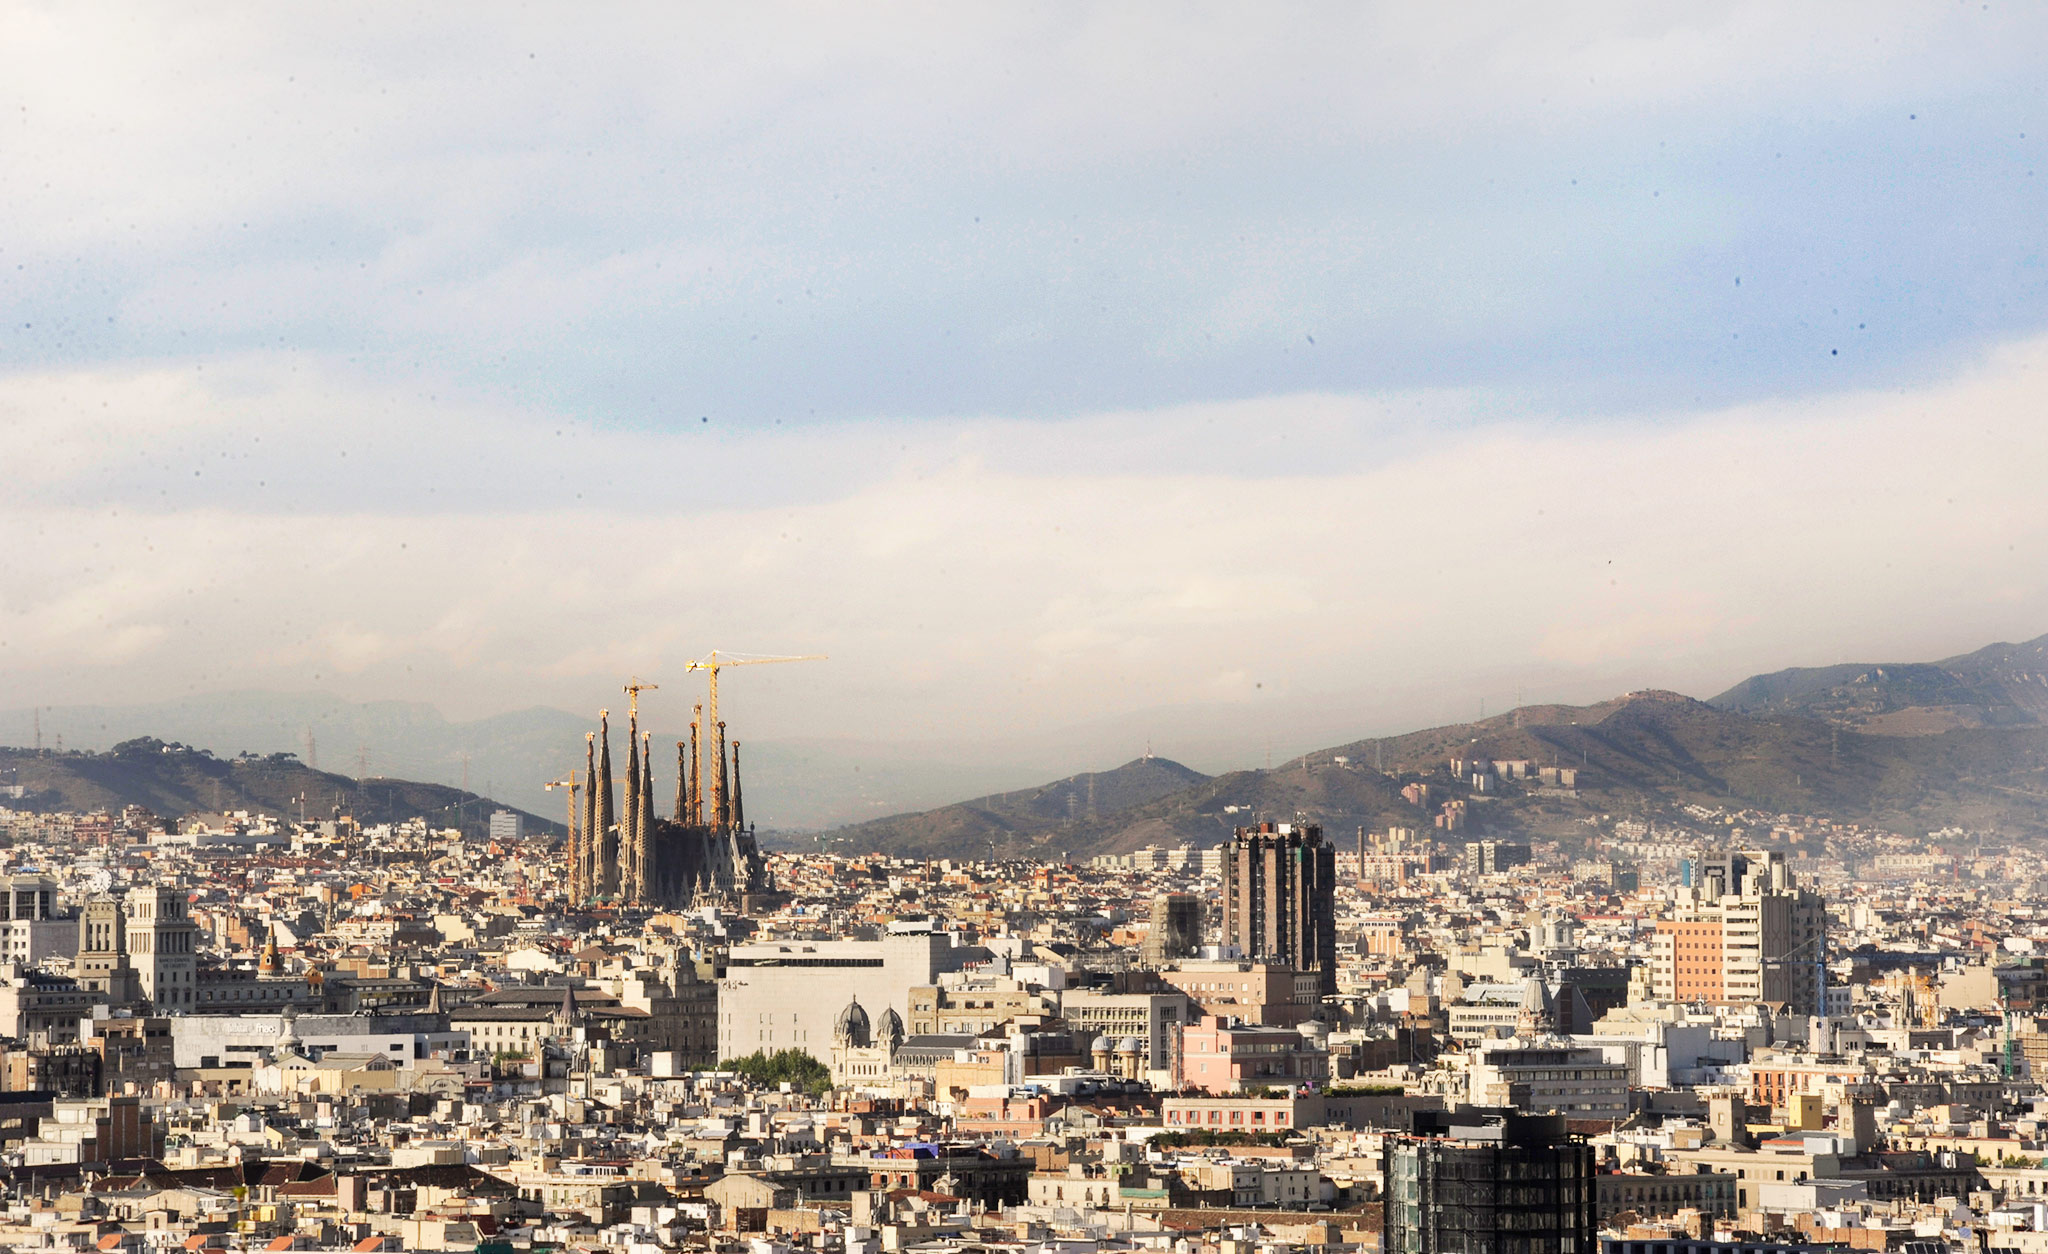 The Sagrada Familia tops the skyline in Barcelona and works as a marker for traversing the city's skatespots.